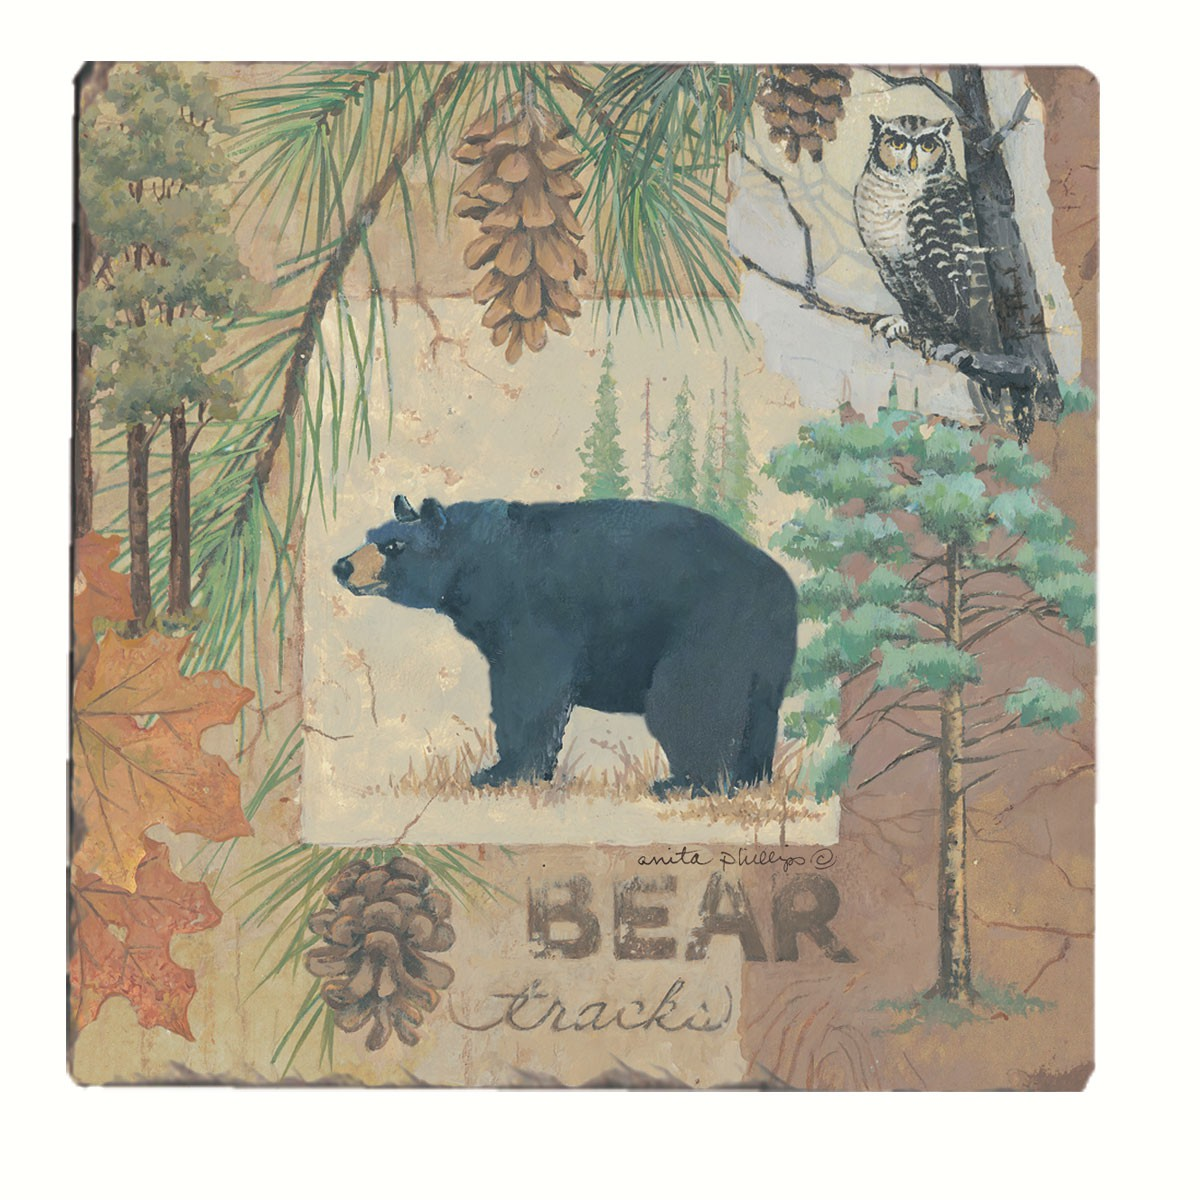 Bear Tracks Tumbled Tile Coasters Set of 4